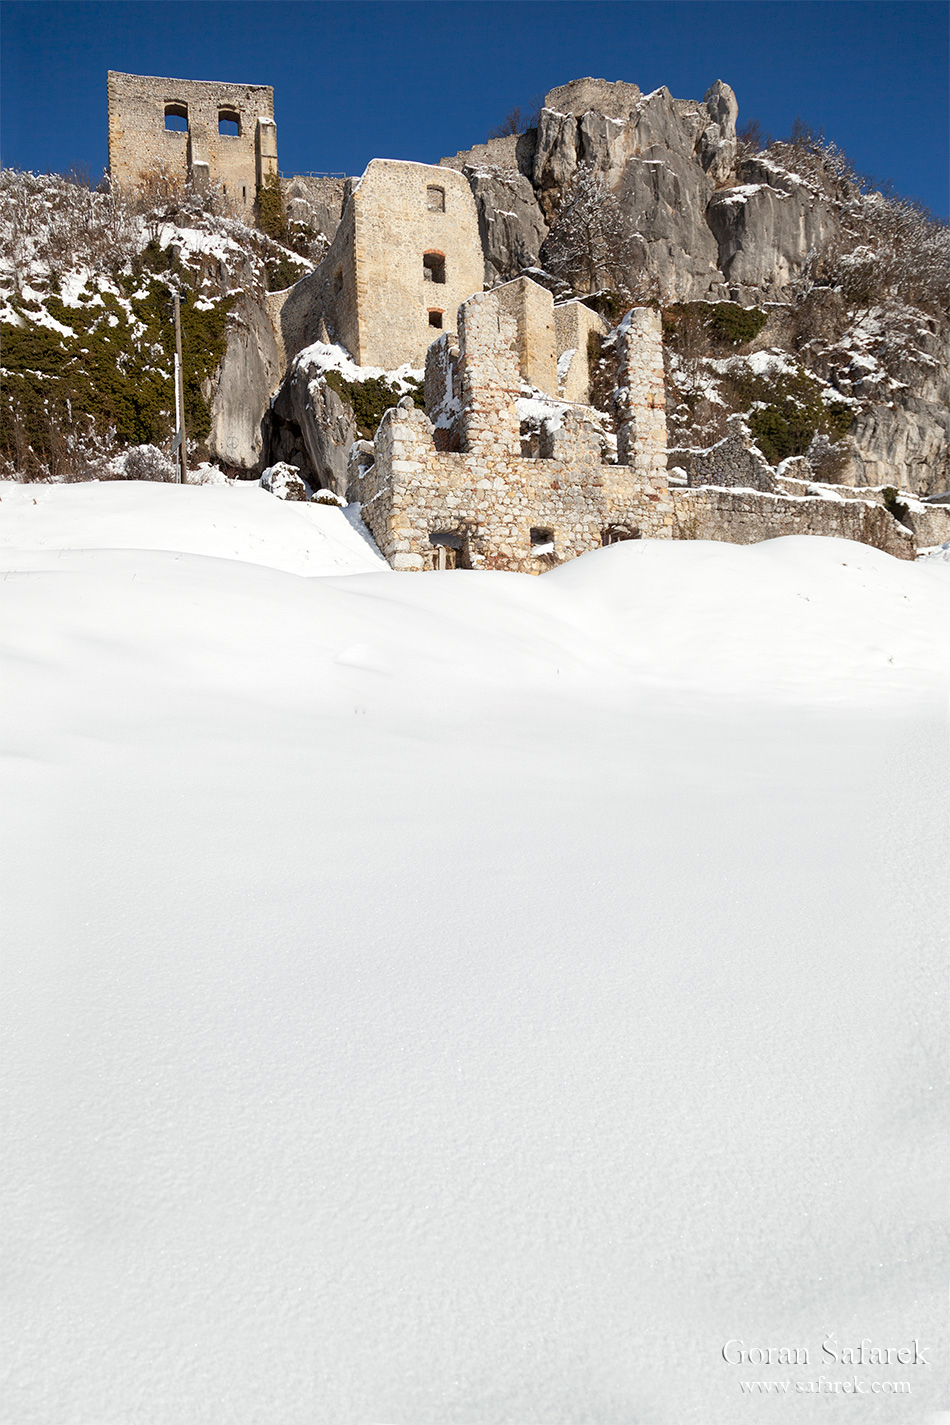 croatia, winter, snow, mountains, kalnik, fort, ruins